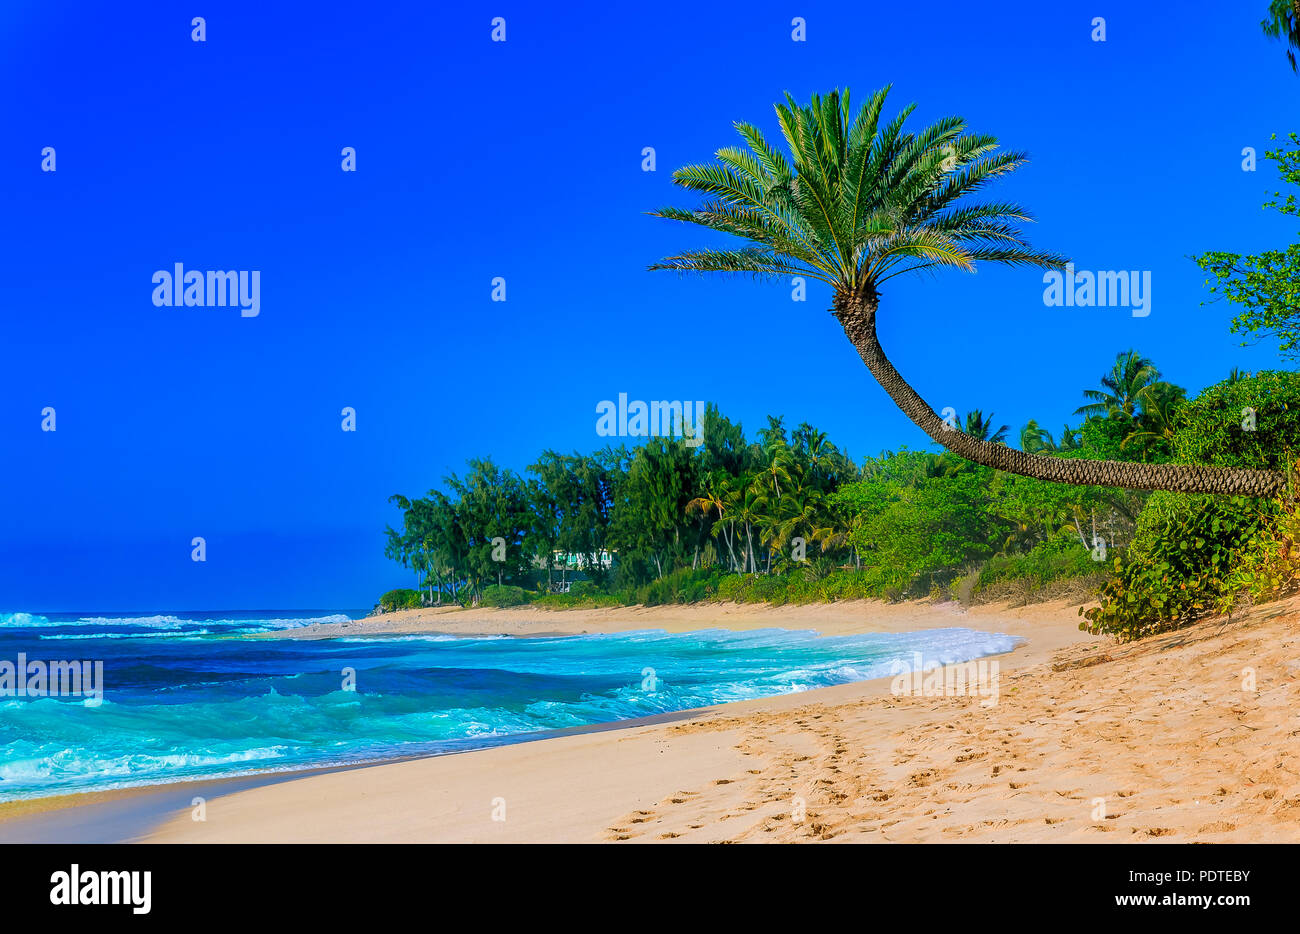 Palm tree hanging over a tropical lagoon beach with blue sky - Stock Image